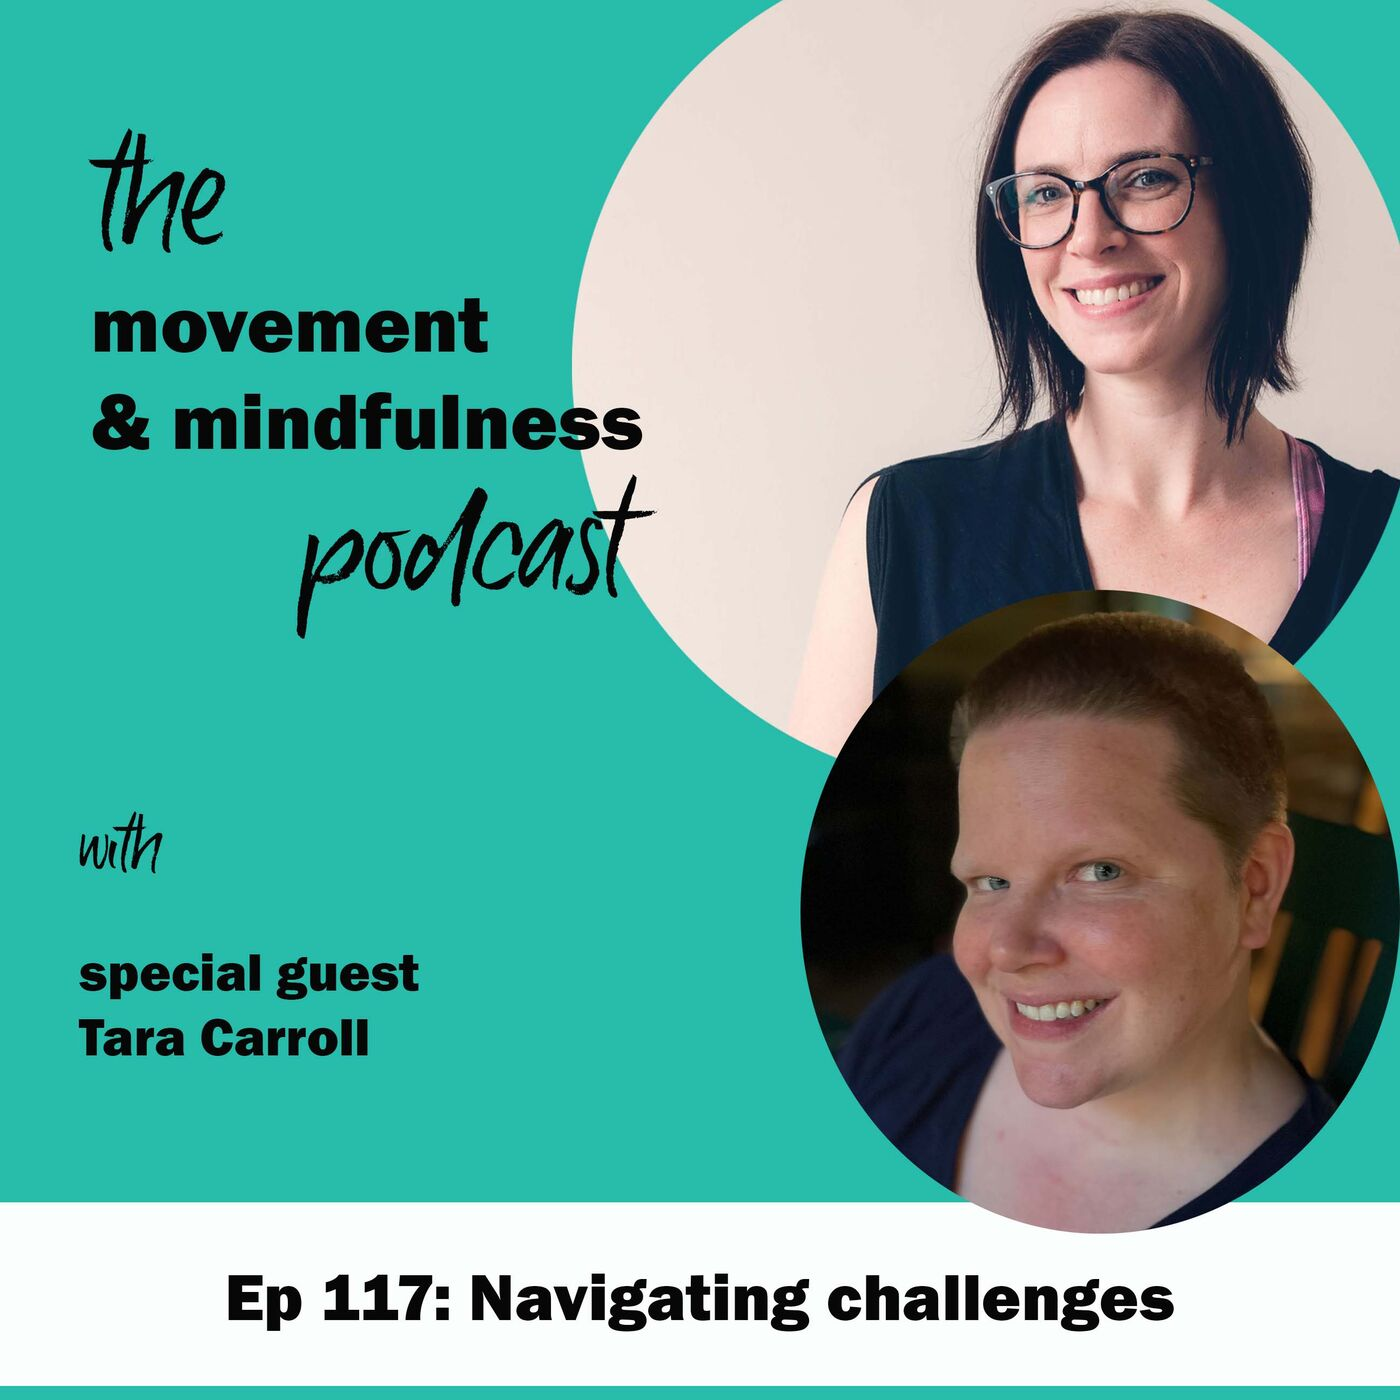 Episode 117: Navigating challenges with Tara Carroll